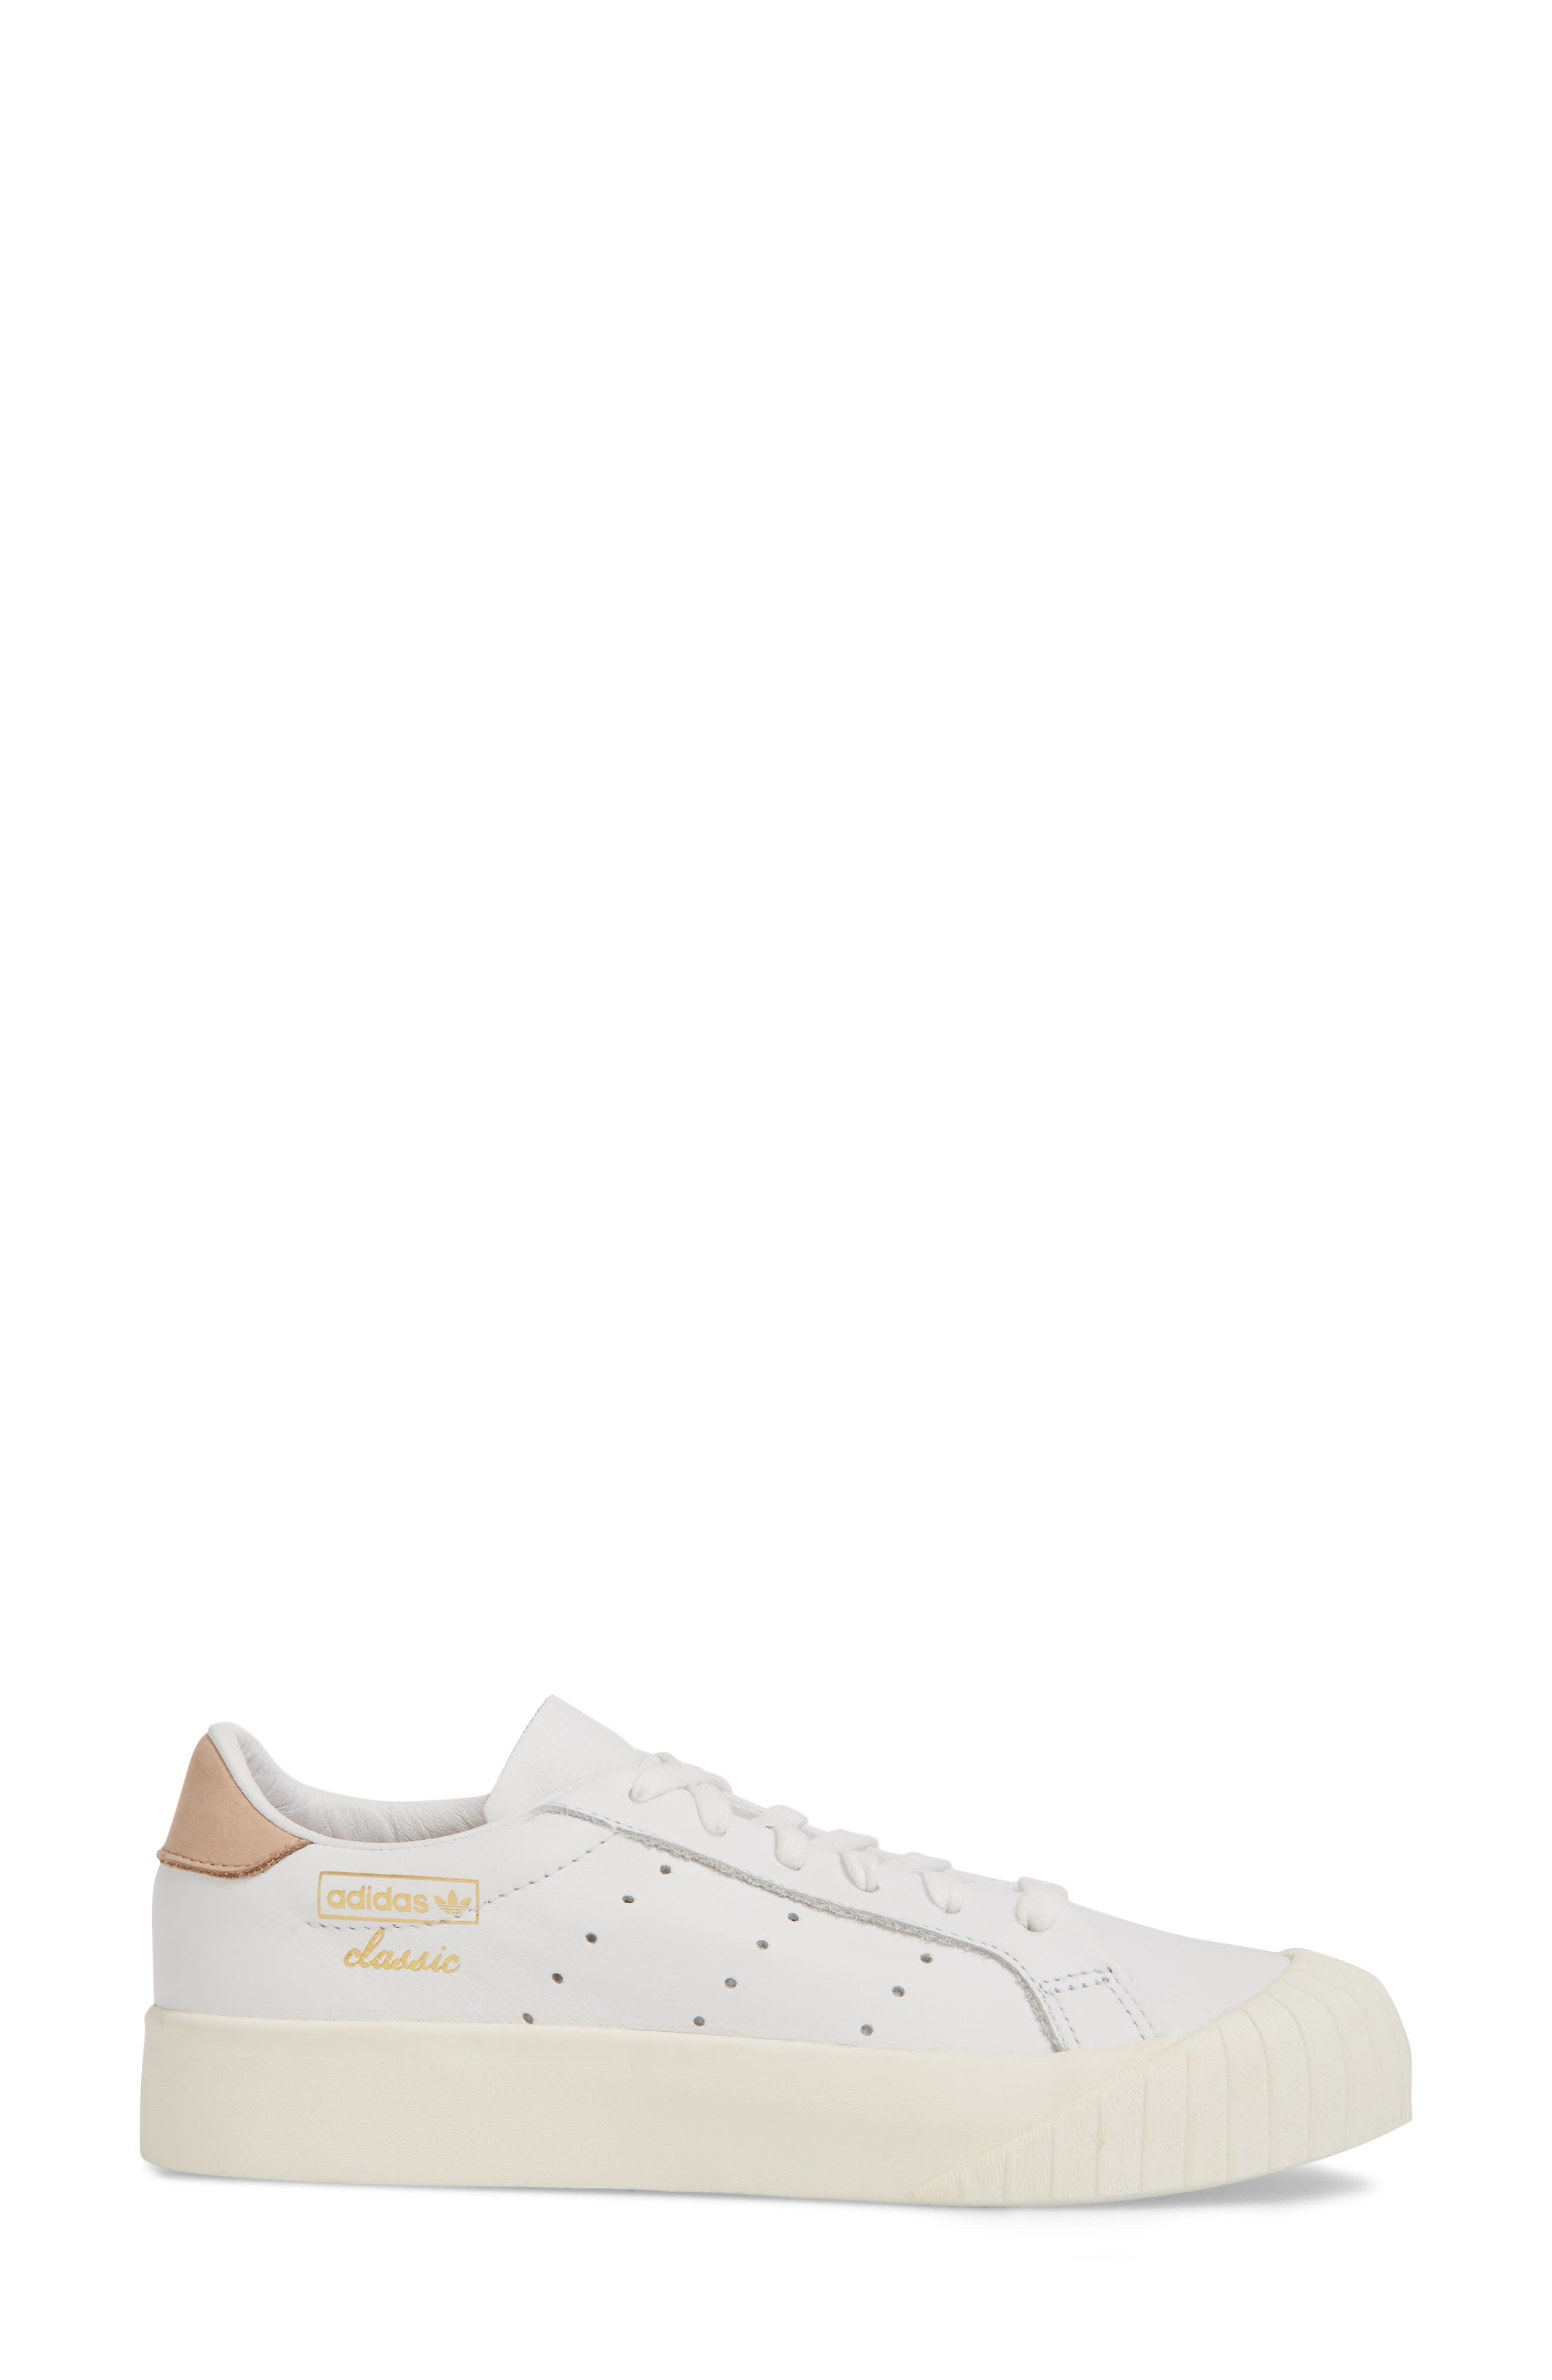 Everyn Perforated Low Top Sneaker,                             Alternate thumbnail 3, color,                             White/ White/ Ash Pearl